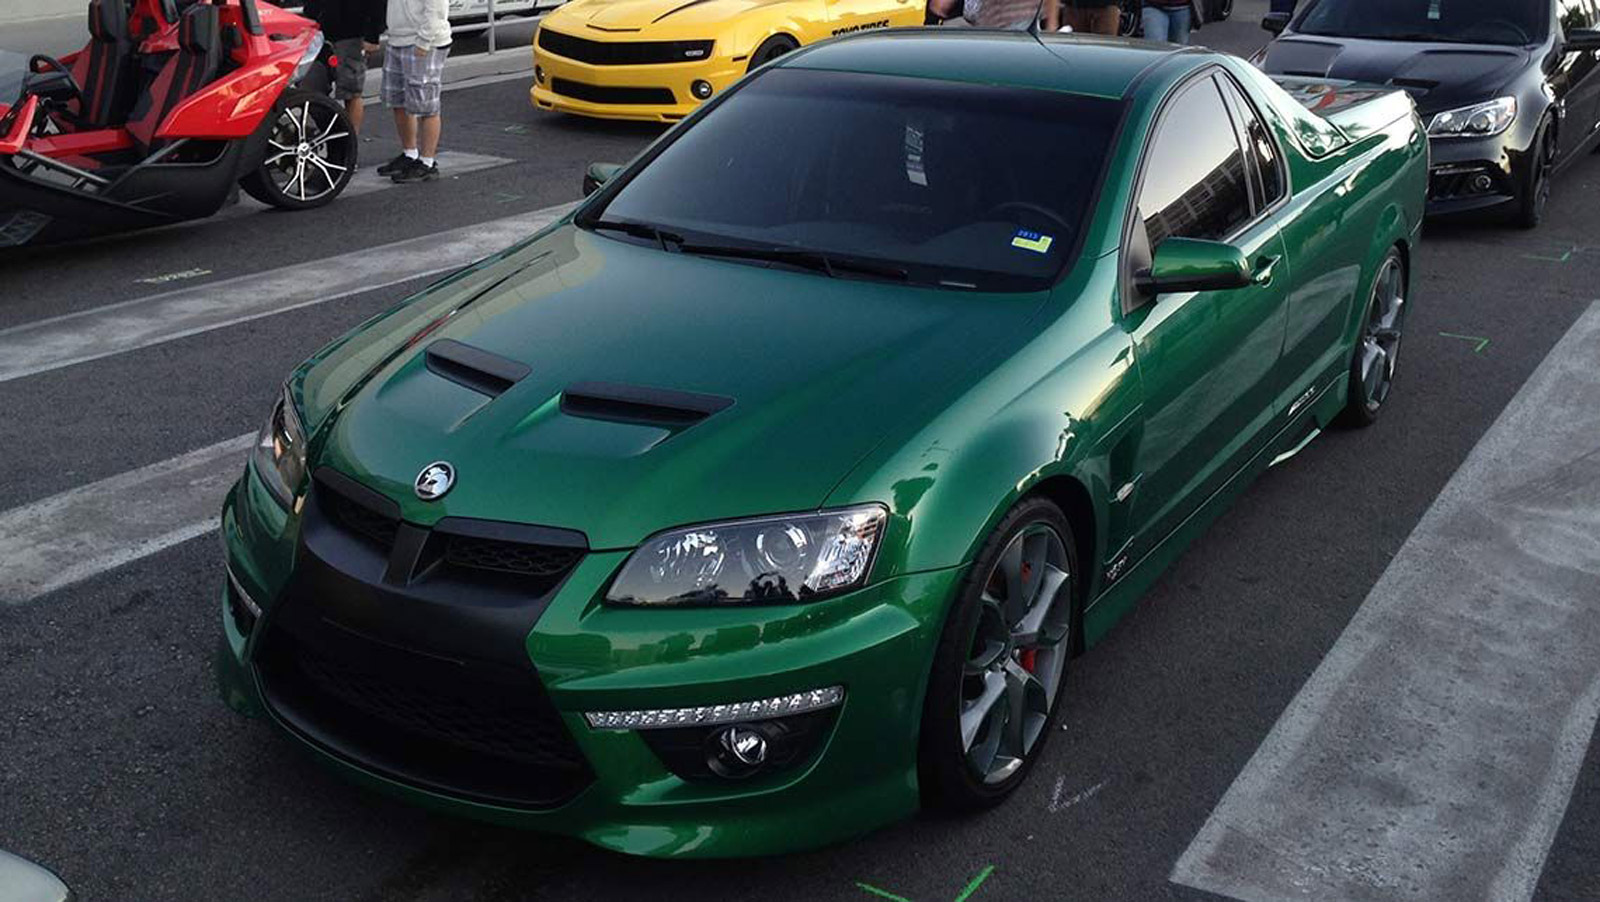 50 Best 2020 Holden Commodore Gts Exterior and Interior